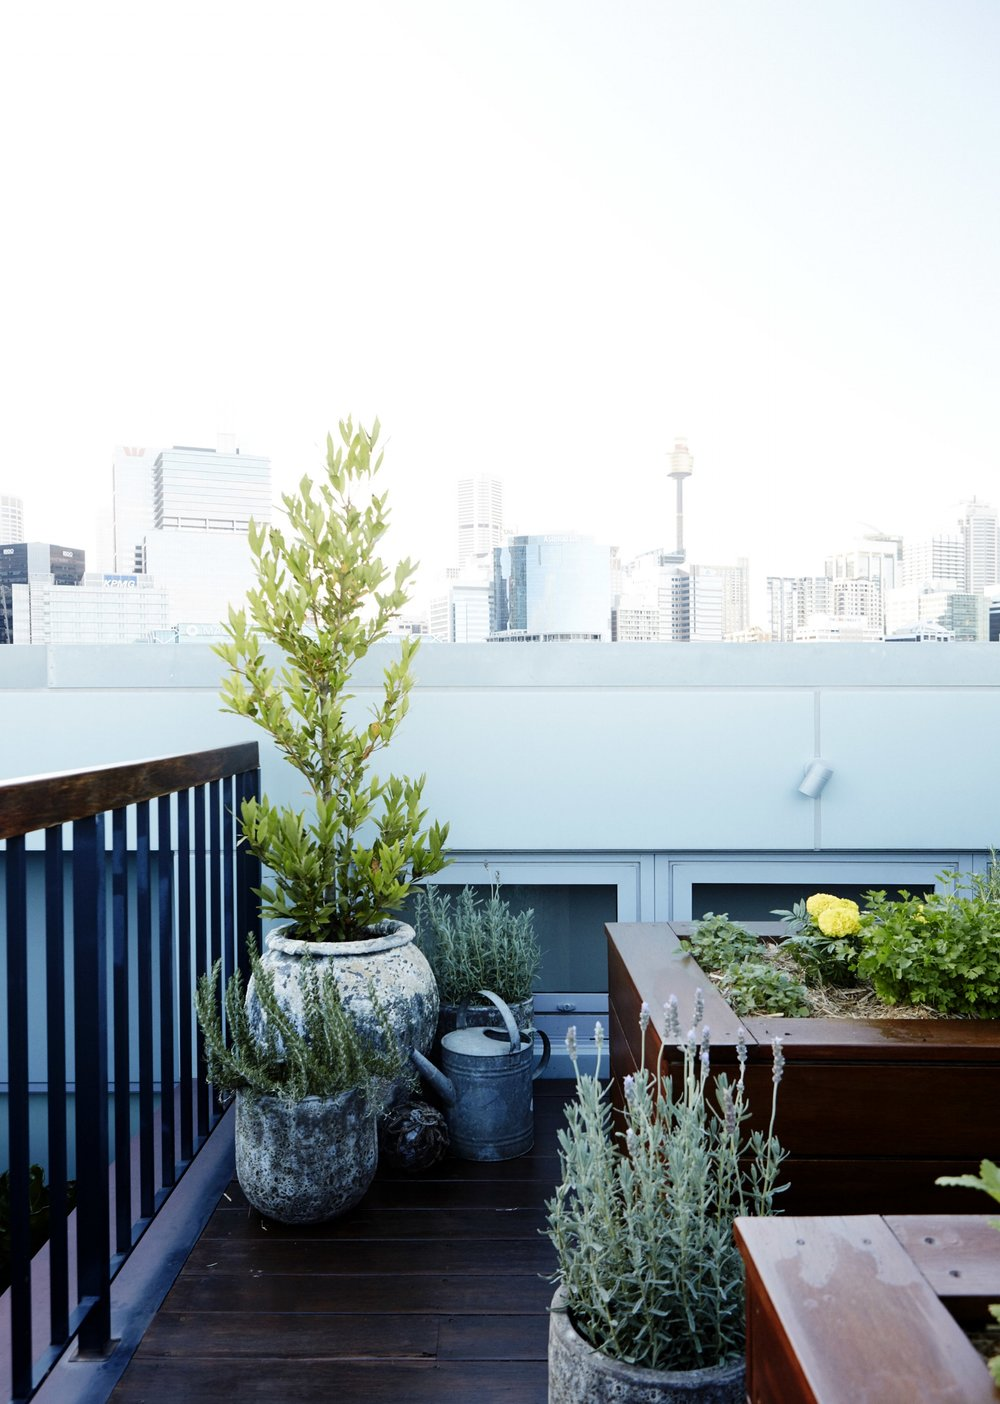 PYRMONT ROOFTOP